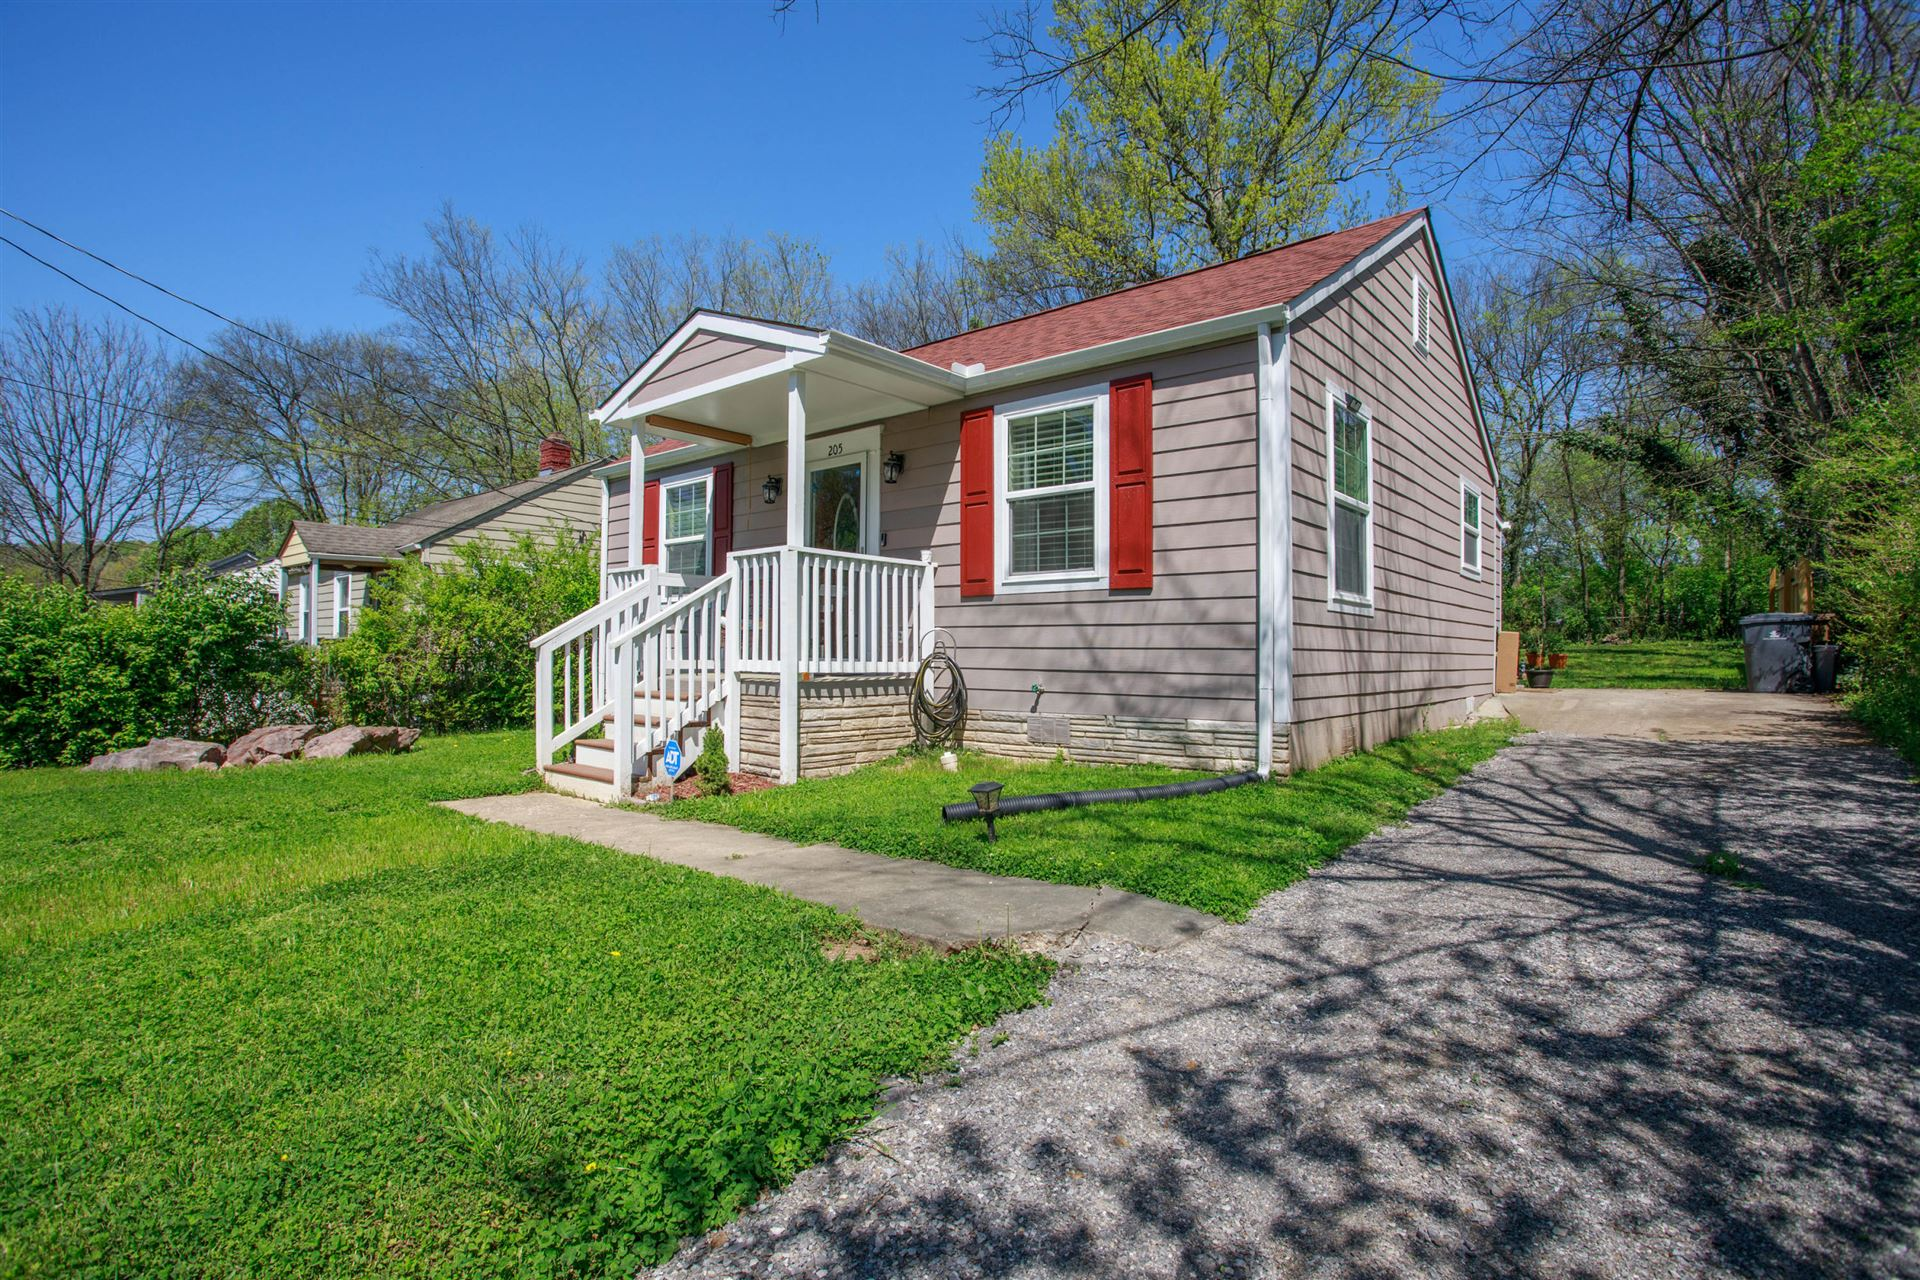 Photo of 205 Wynn Ave, Knoxville, TN 37920 (MLS # 1149080)